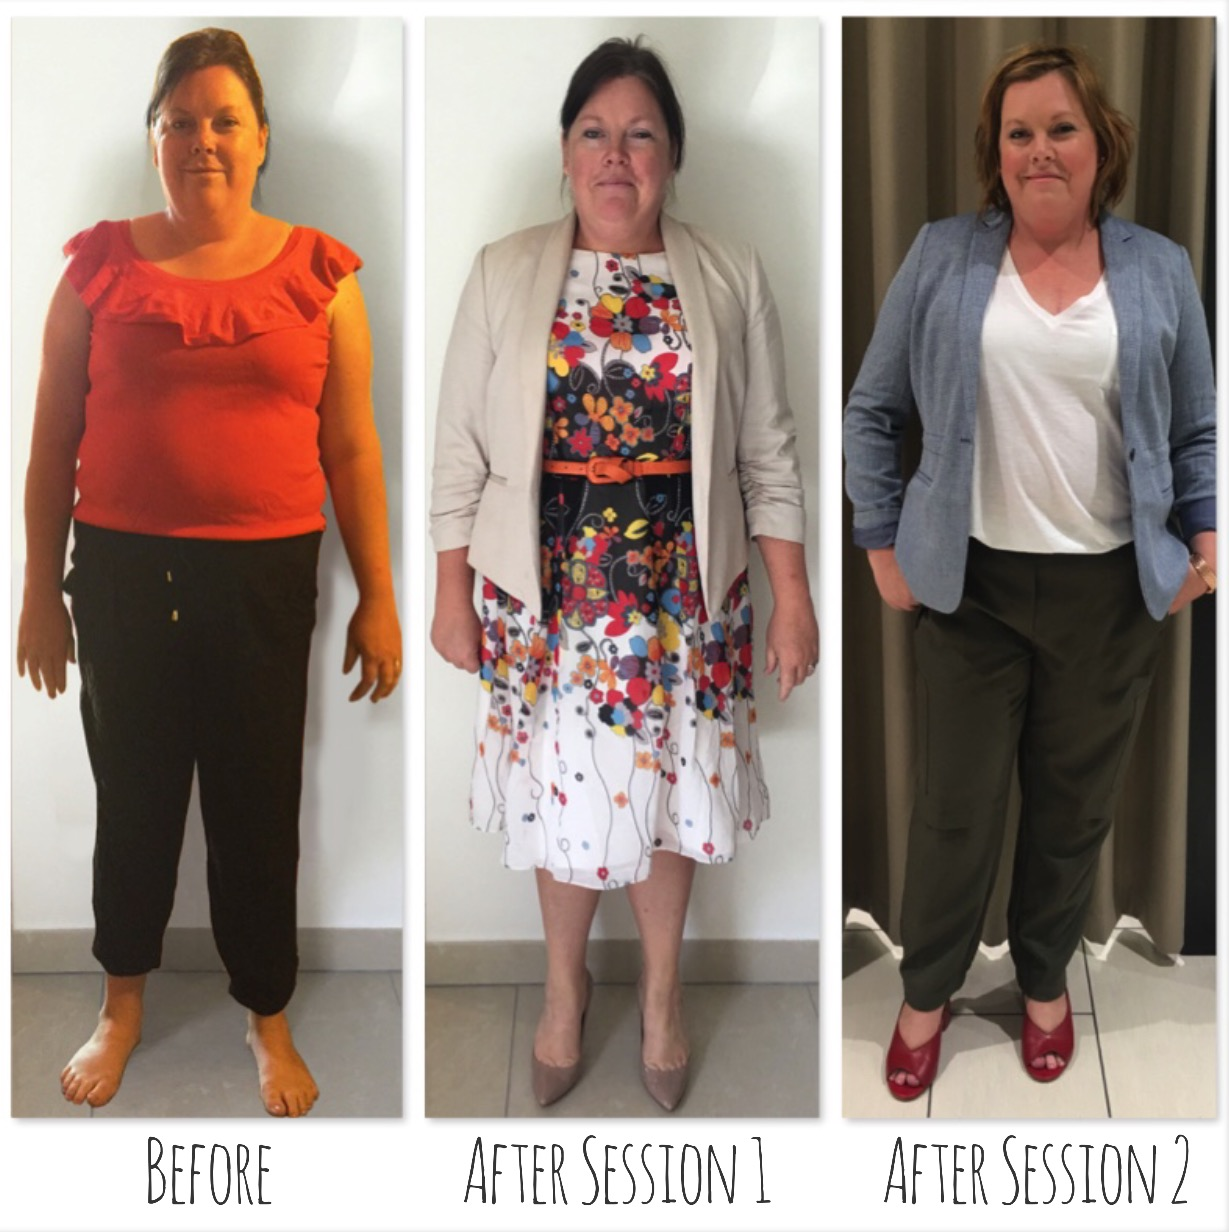 Trudy's transformation is incredible, flattering clothes & hair have made all the difference